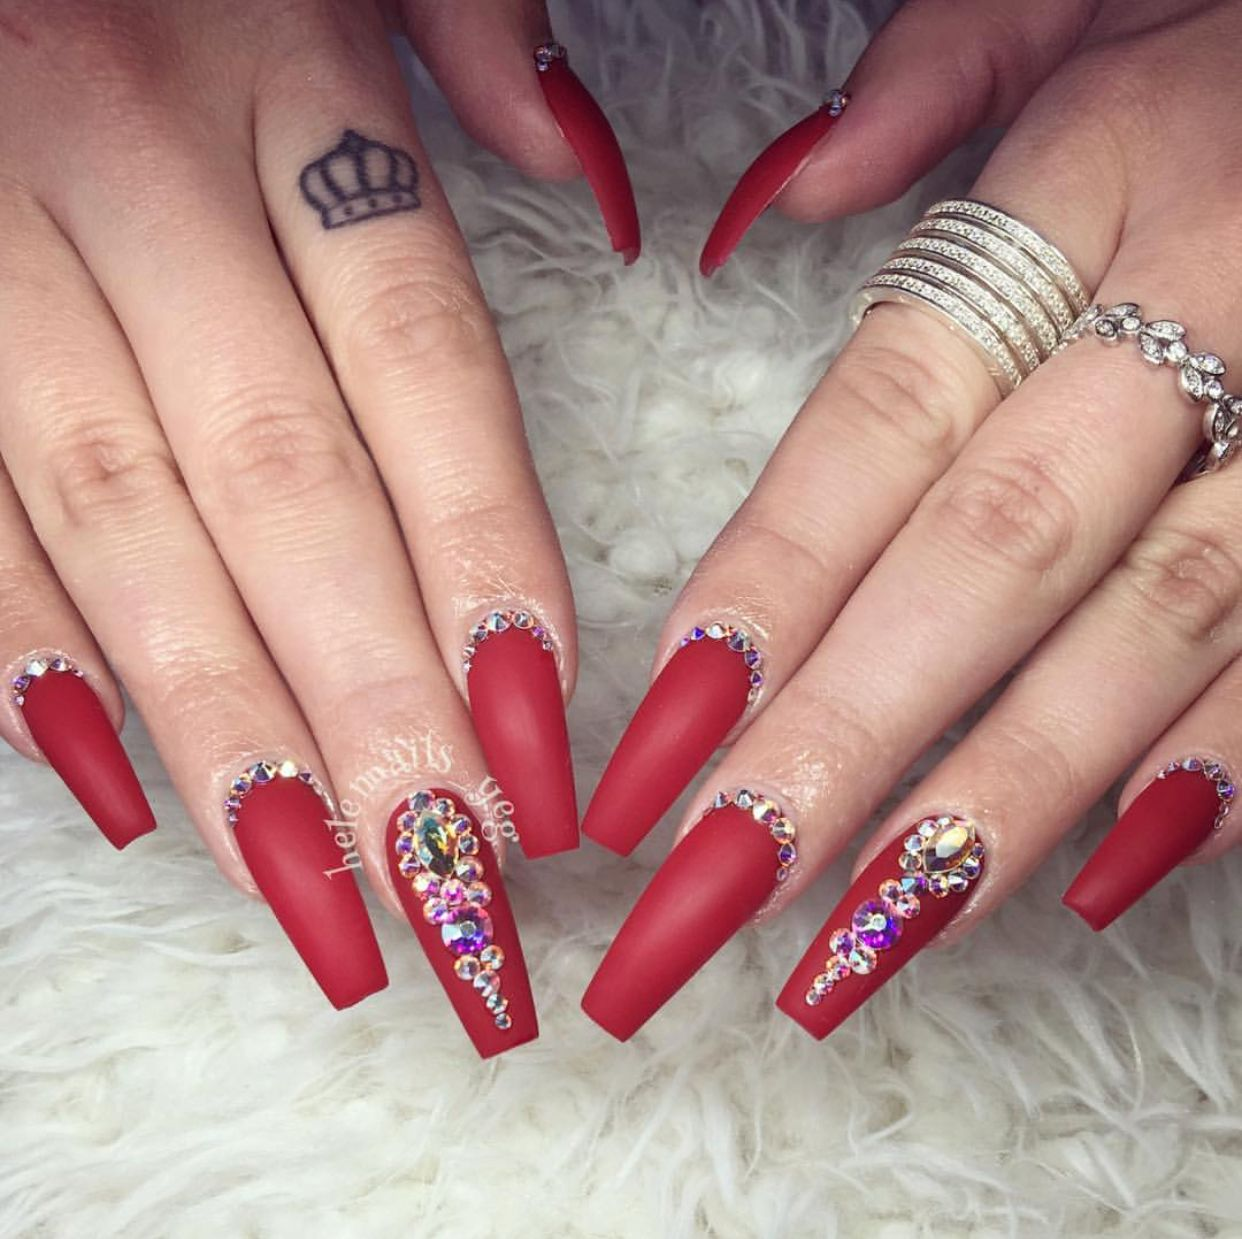 Red Bling Coffin Nails Nails Design With Rhinestones Bling Acrylic Nails Red Acrylic Nails